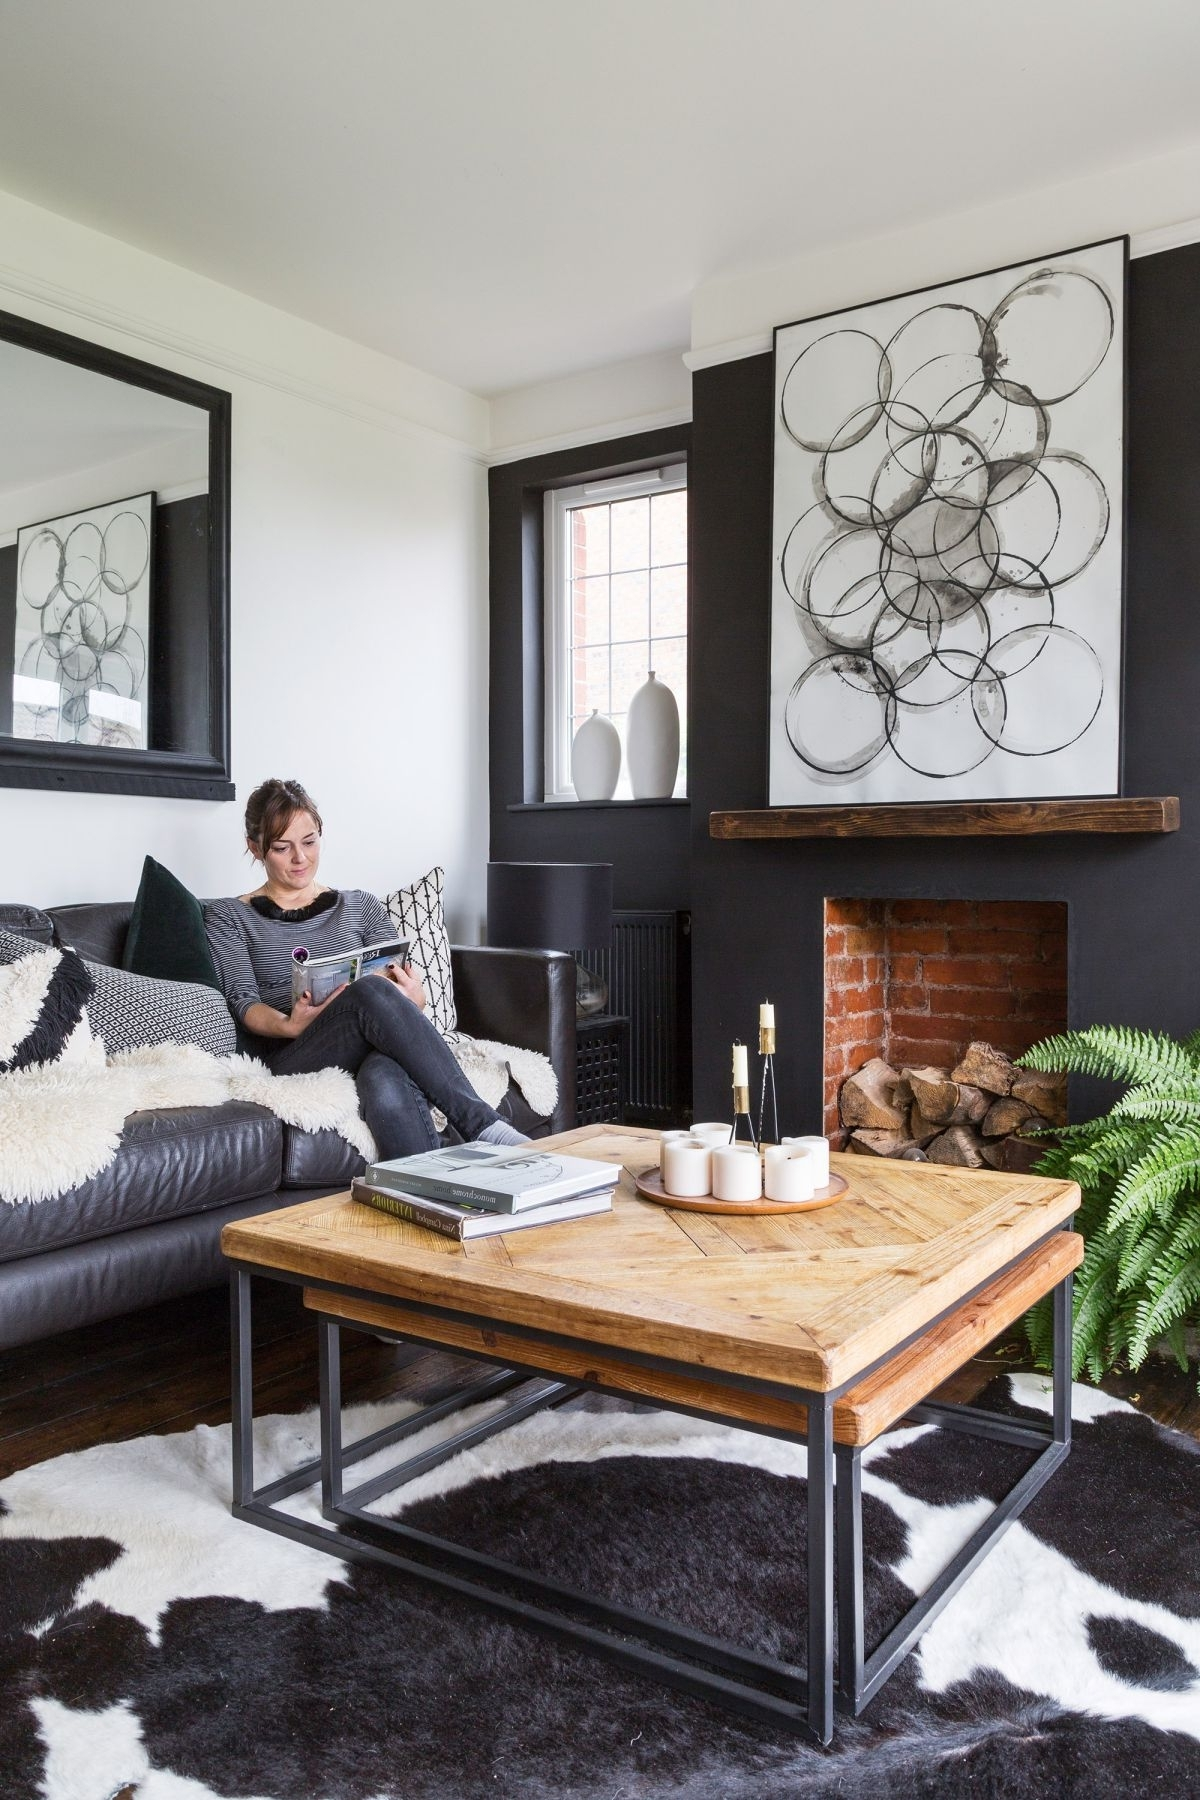 Living Room Paint Ideas: 17 Color Schemes To Switch Up Your Monochrome Living Room Decorating